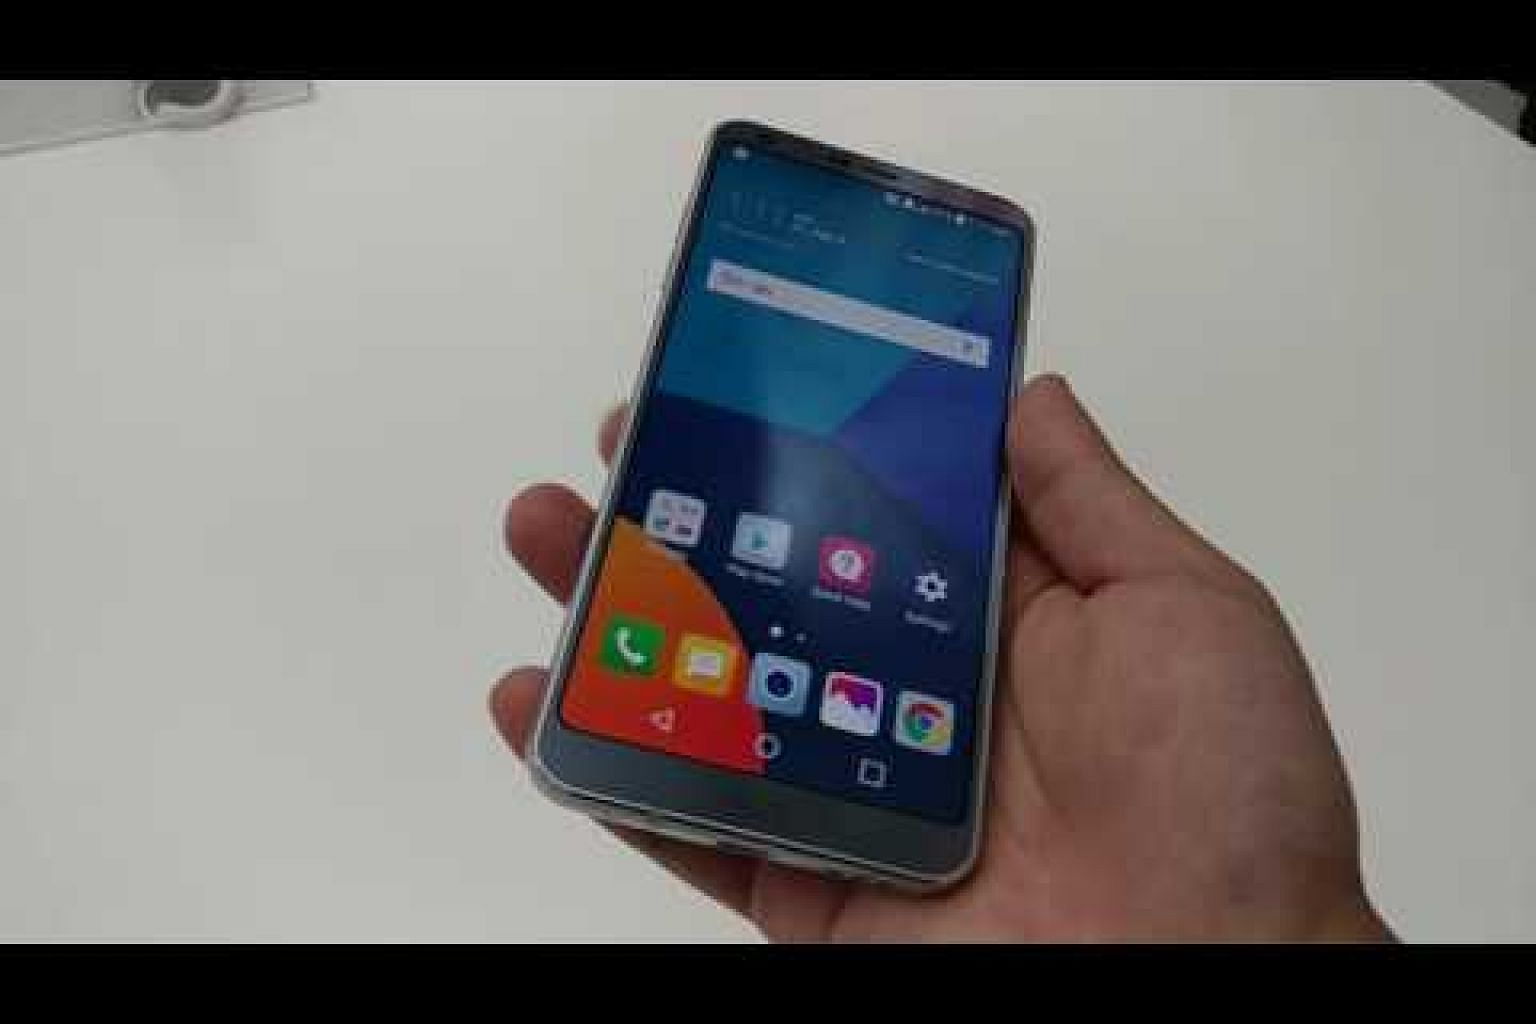 Hands-on with the LG G6